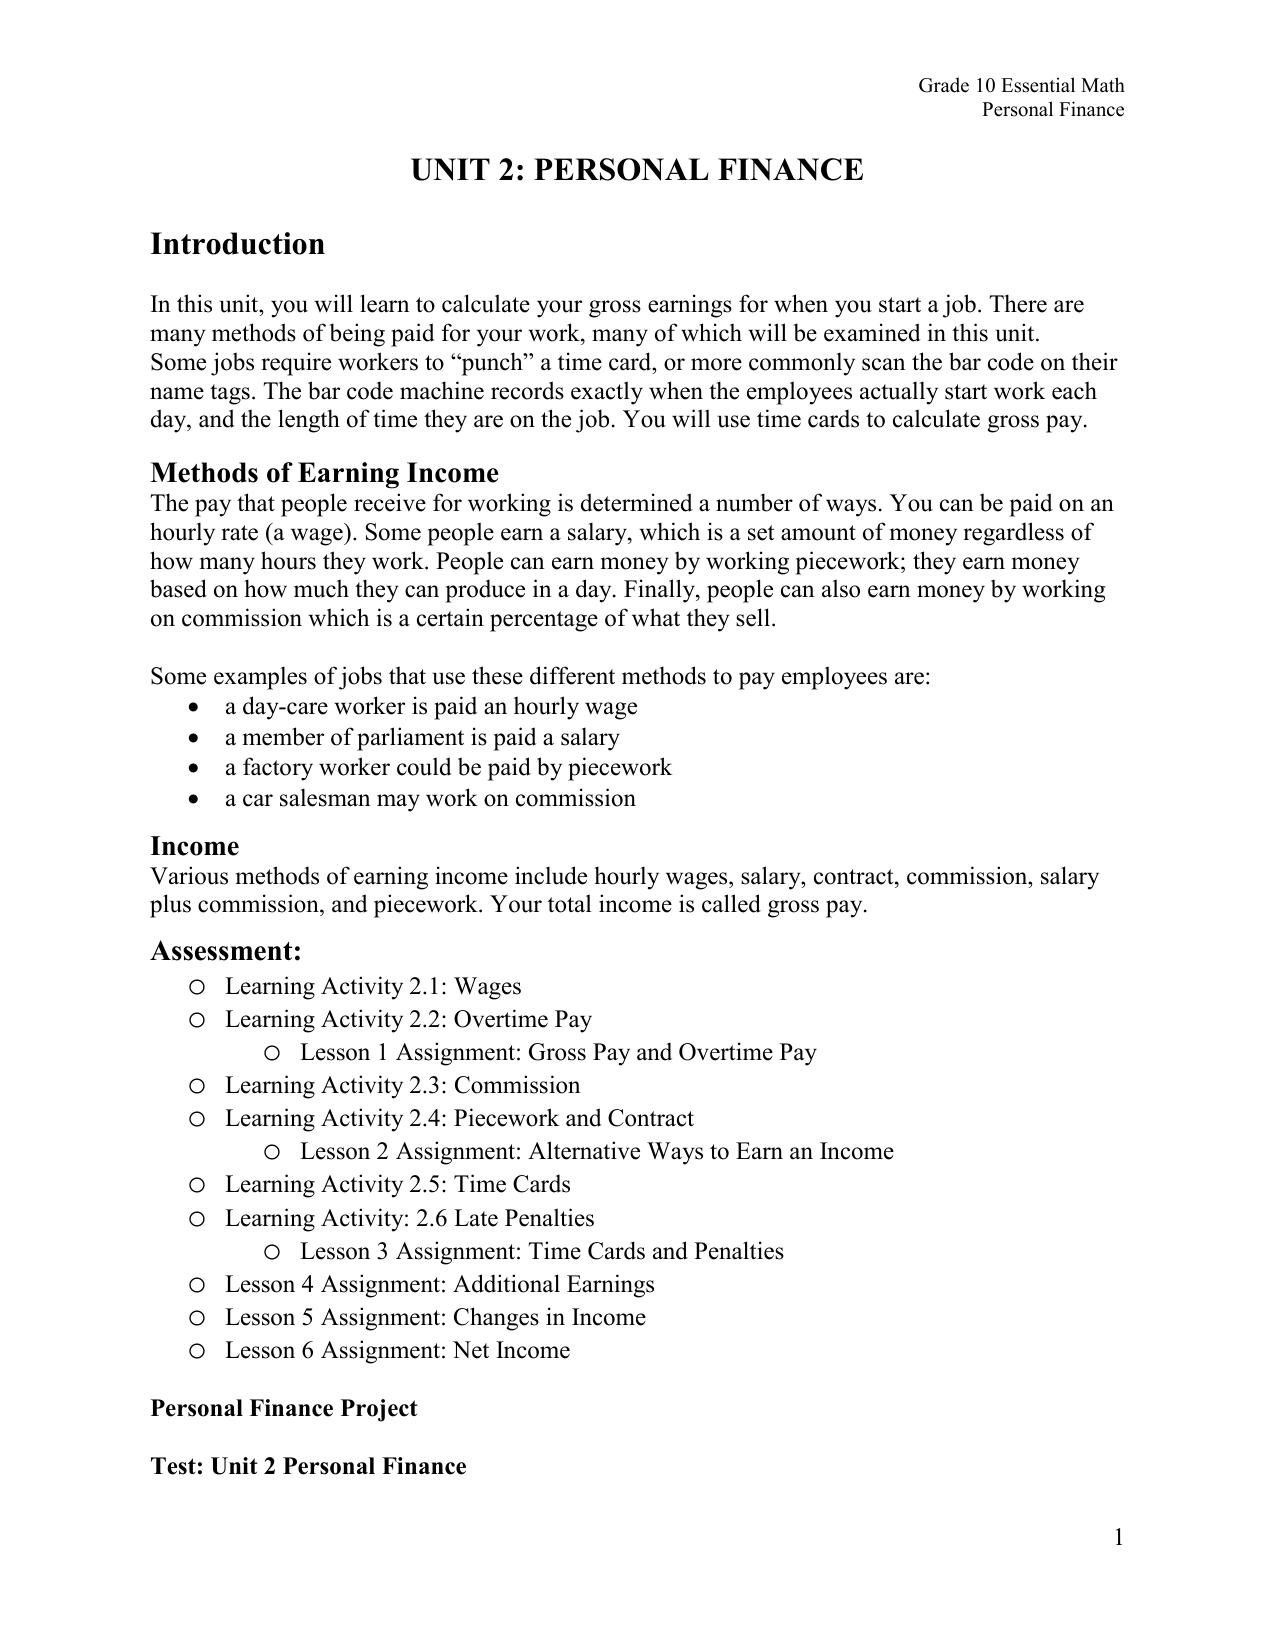 personal finance project examples